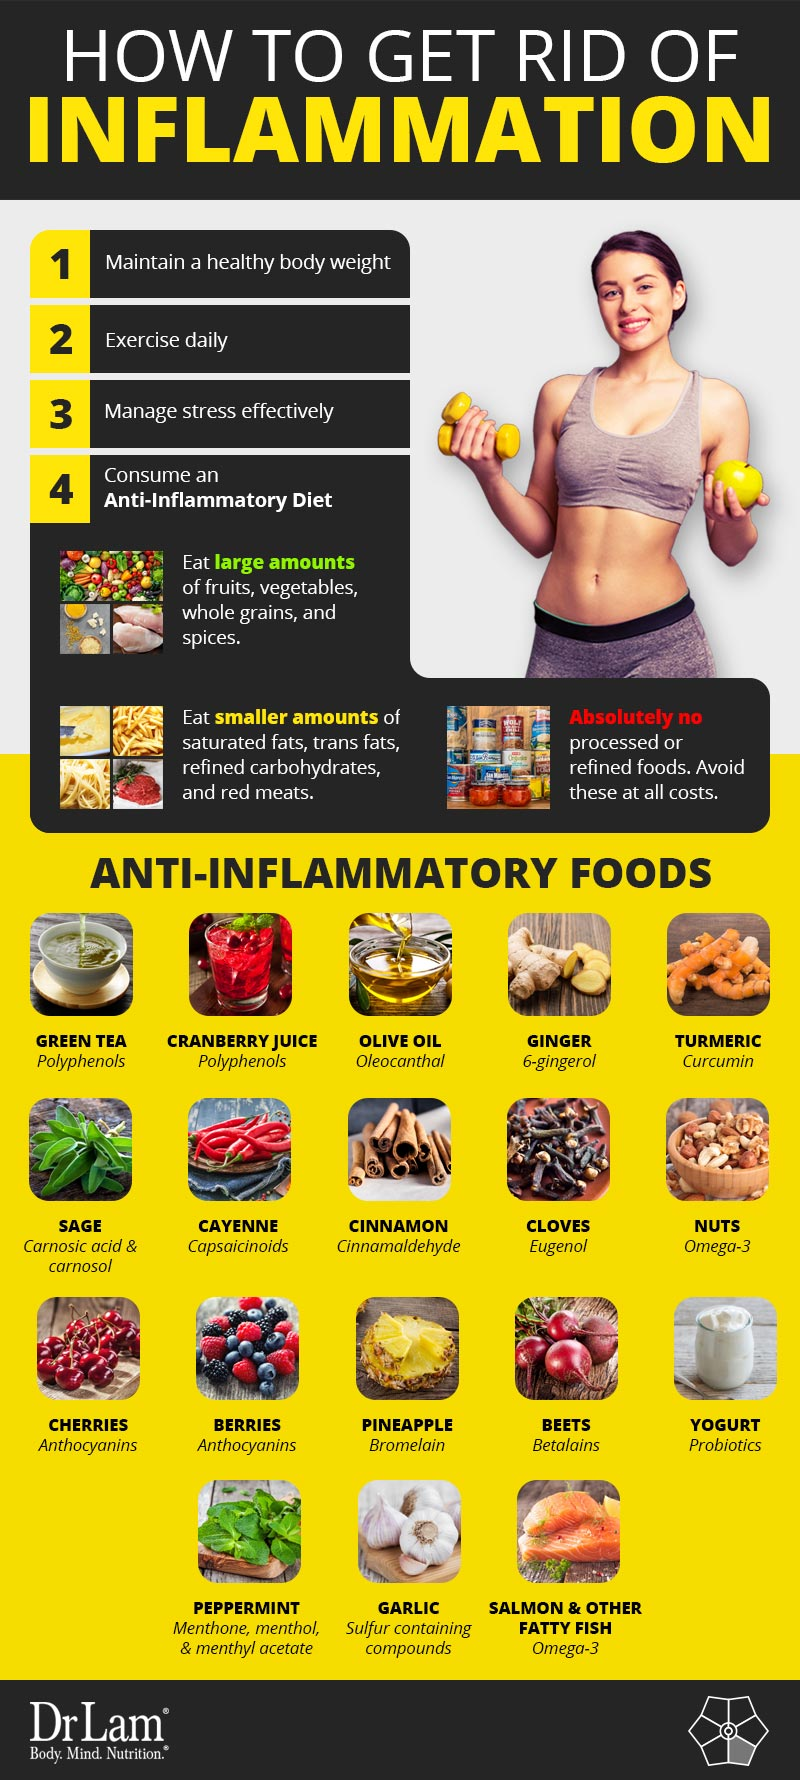 Check out this easy to understand infographic on how to get rid of inflammation in the body